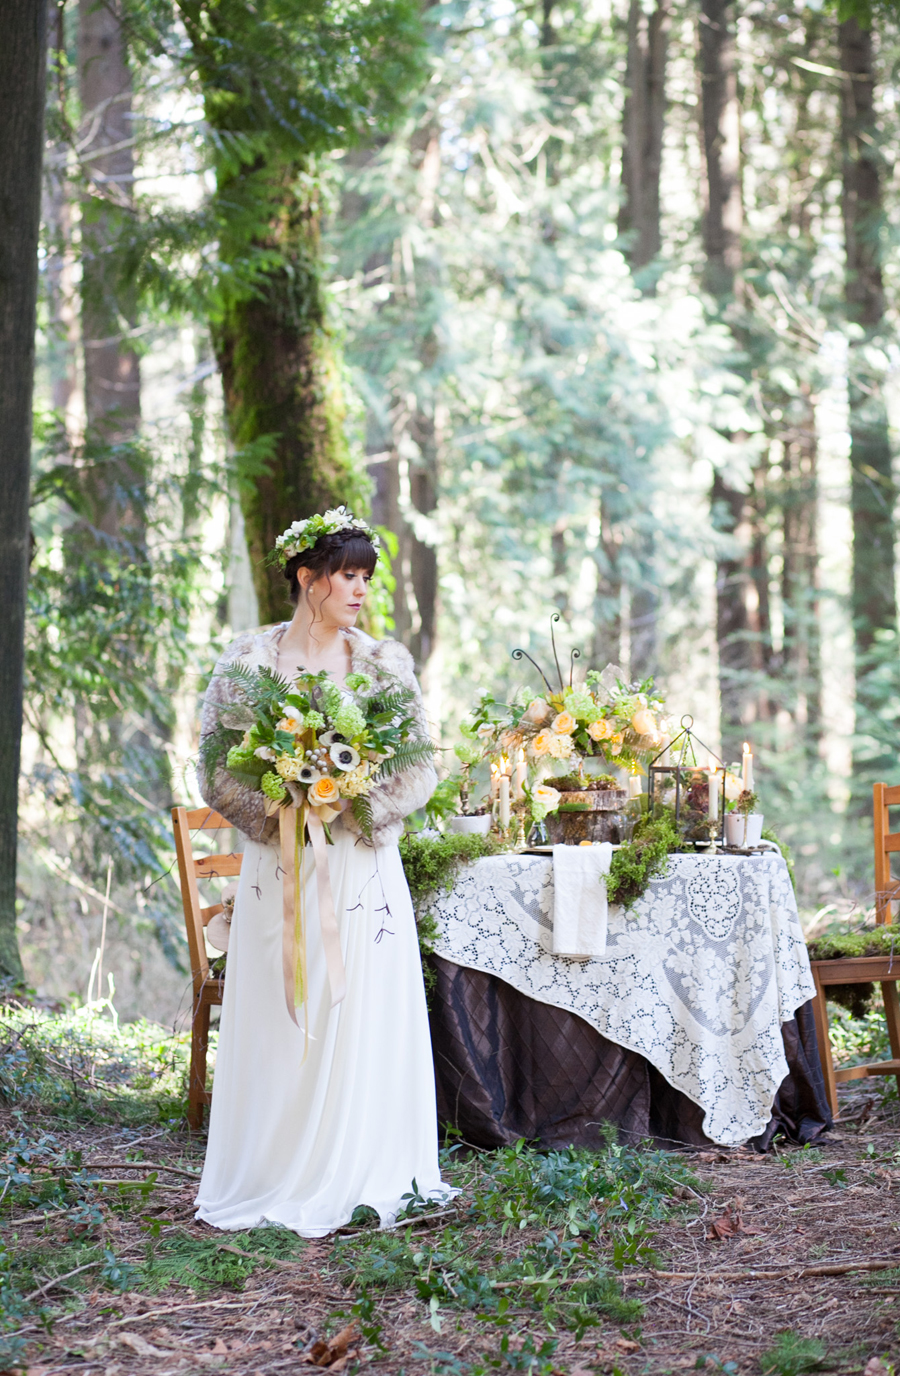 012-pacific-northwest-woodland-bridal-styled-session-lynden-washington-katheryn-moran-photography.jpg